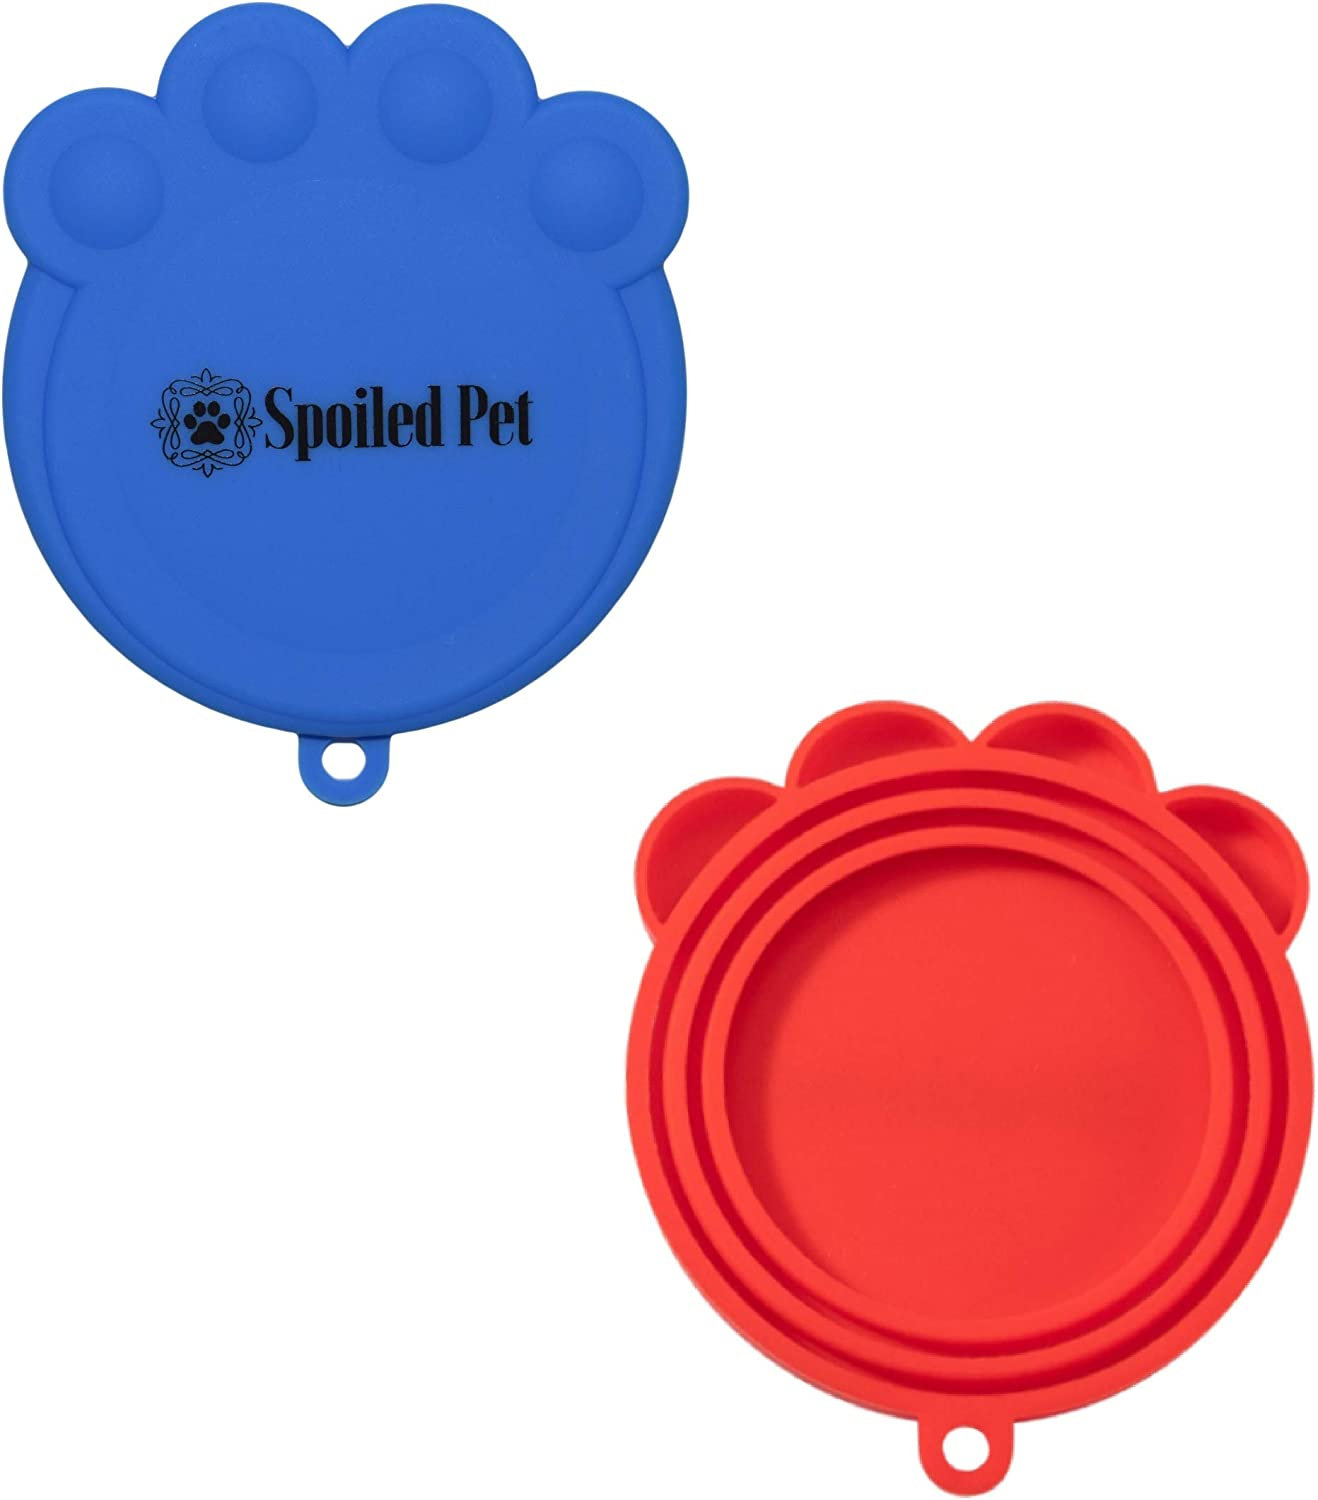 Pet Food Can Lids - Silicone Covers for Cat and Dog Pet Food Storage - 4 Pack - Universal Fitting Tops for All Standard Size Can Food - Keeps Food Fresh (4 Pack Can Cover Lids)